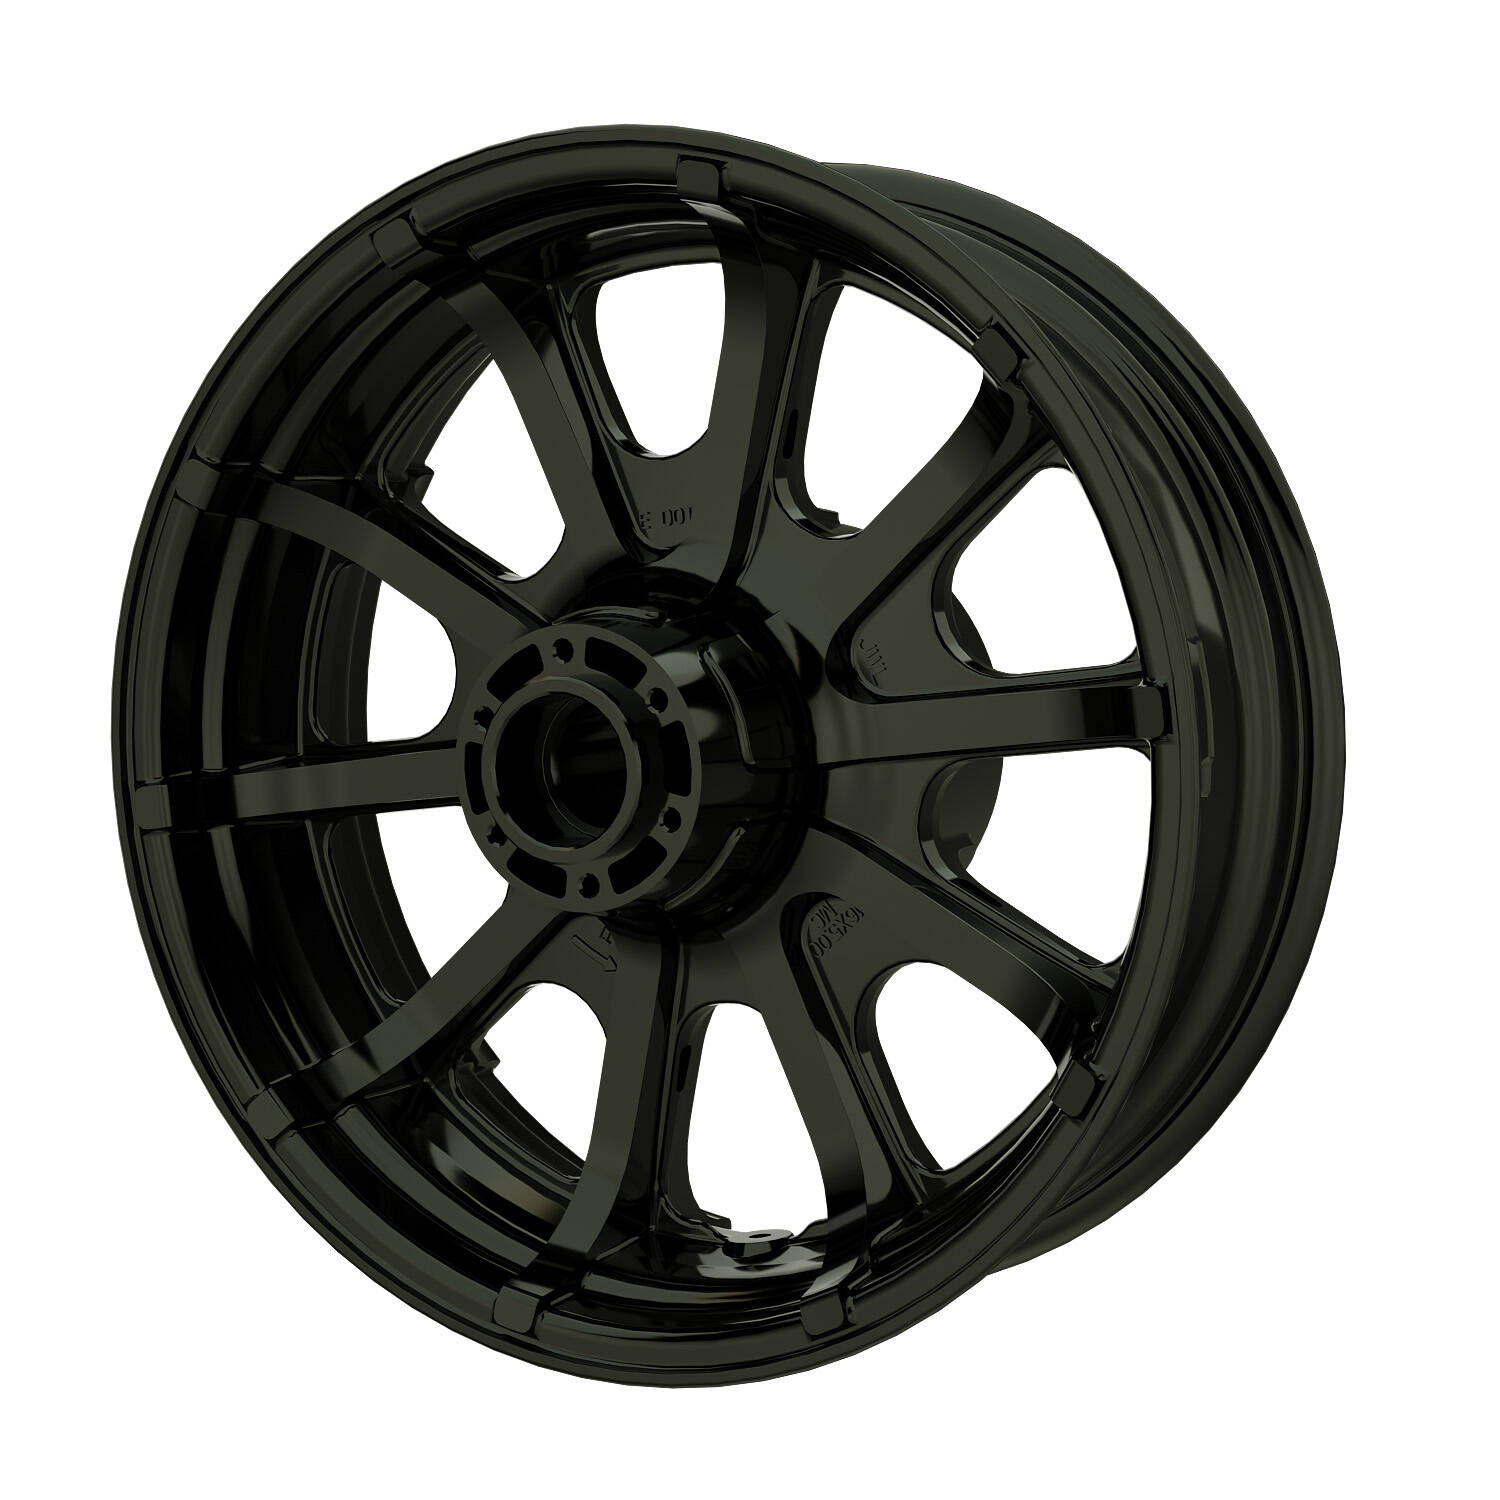 16″ 10-Spoke Rear Wheel – Black